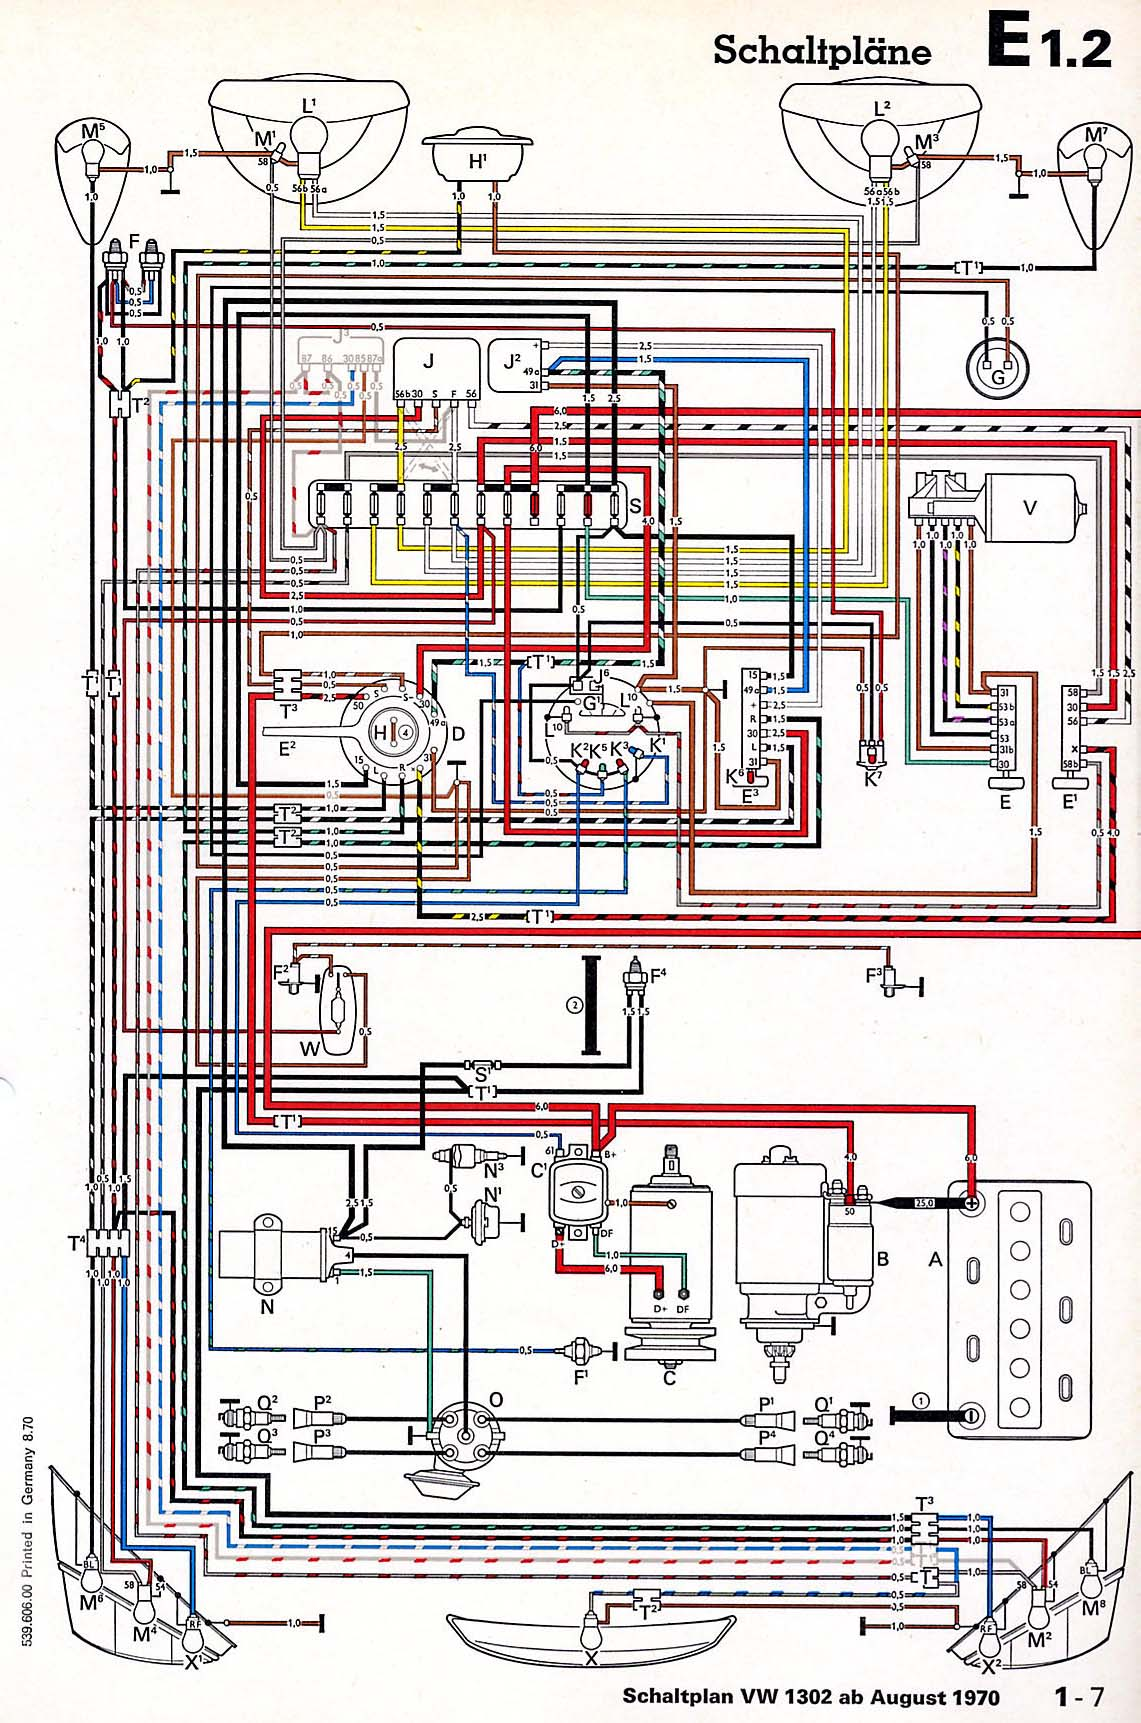 71 Vw Bus Wiring Diagram Manual Guide Get Free Image About 1971 Beetle